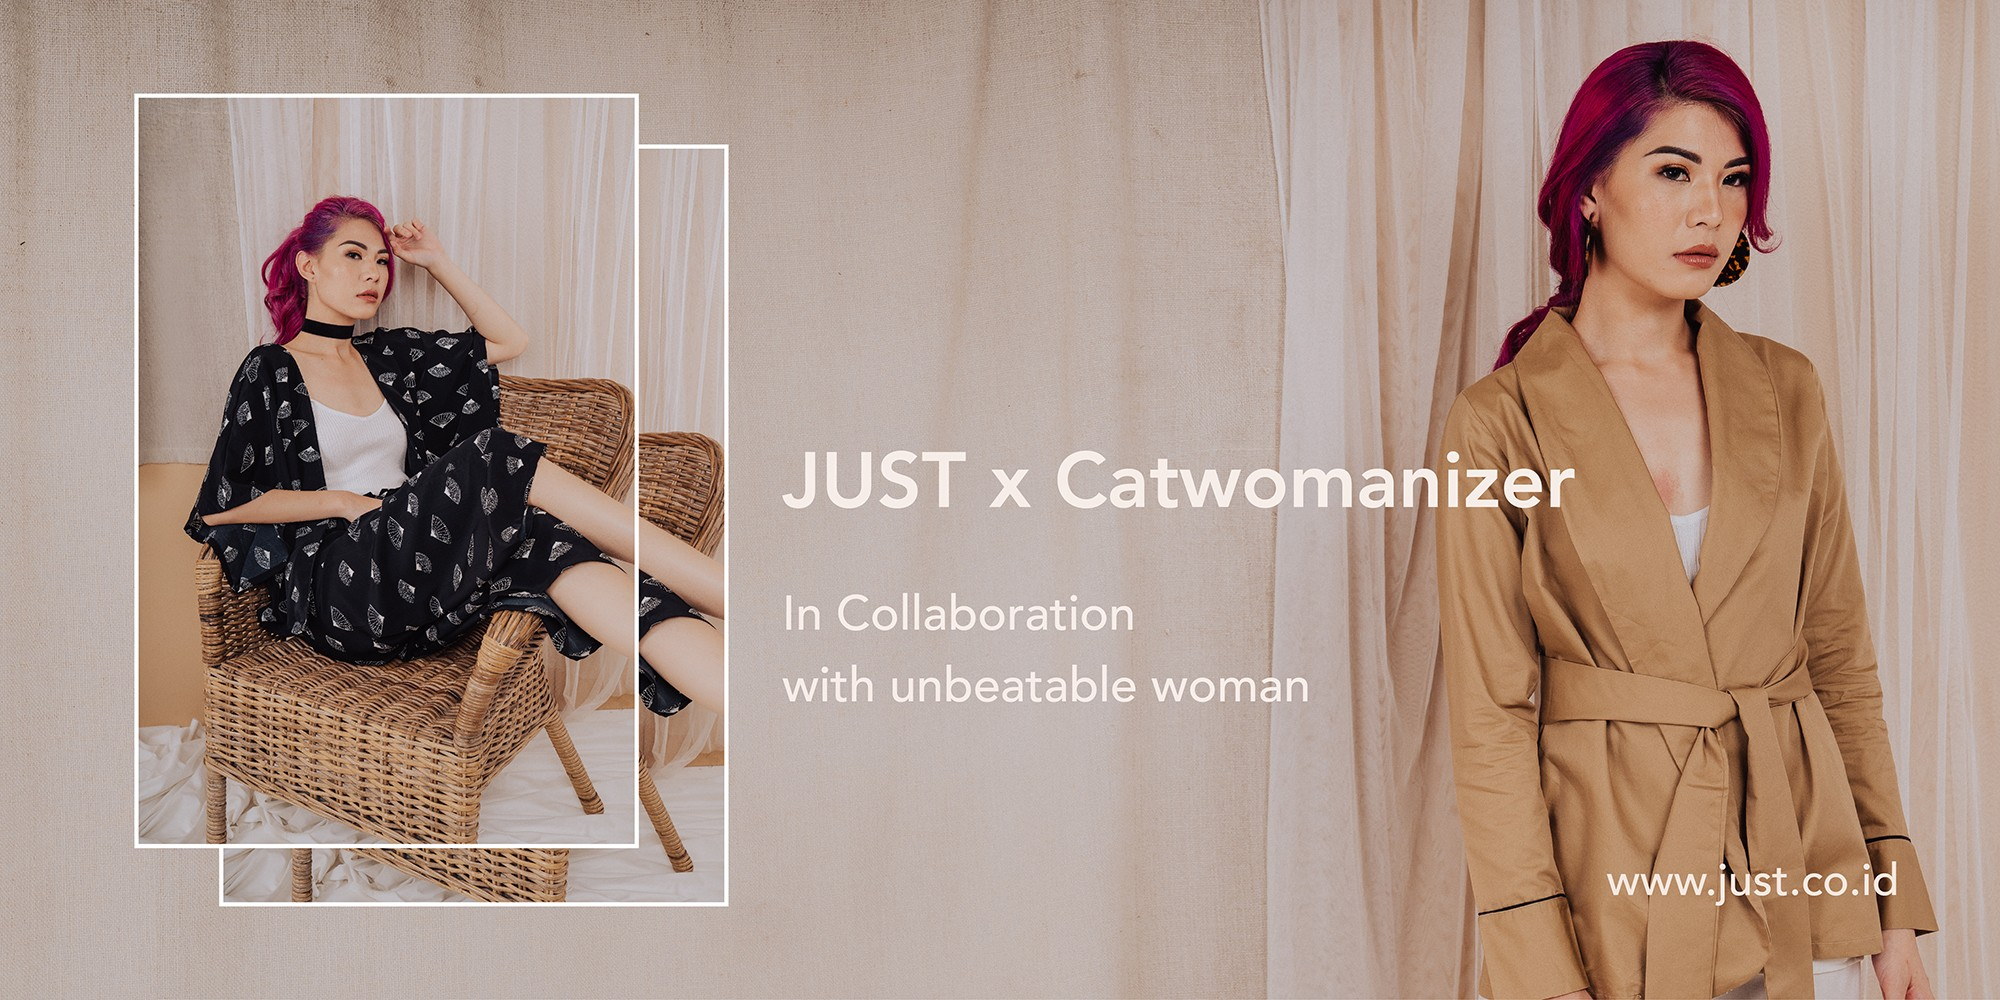 JUST x Catwomanizer